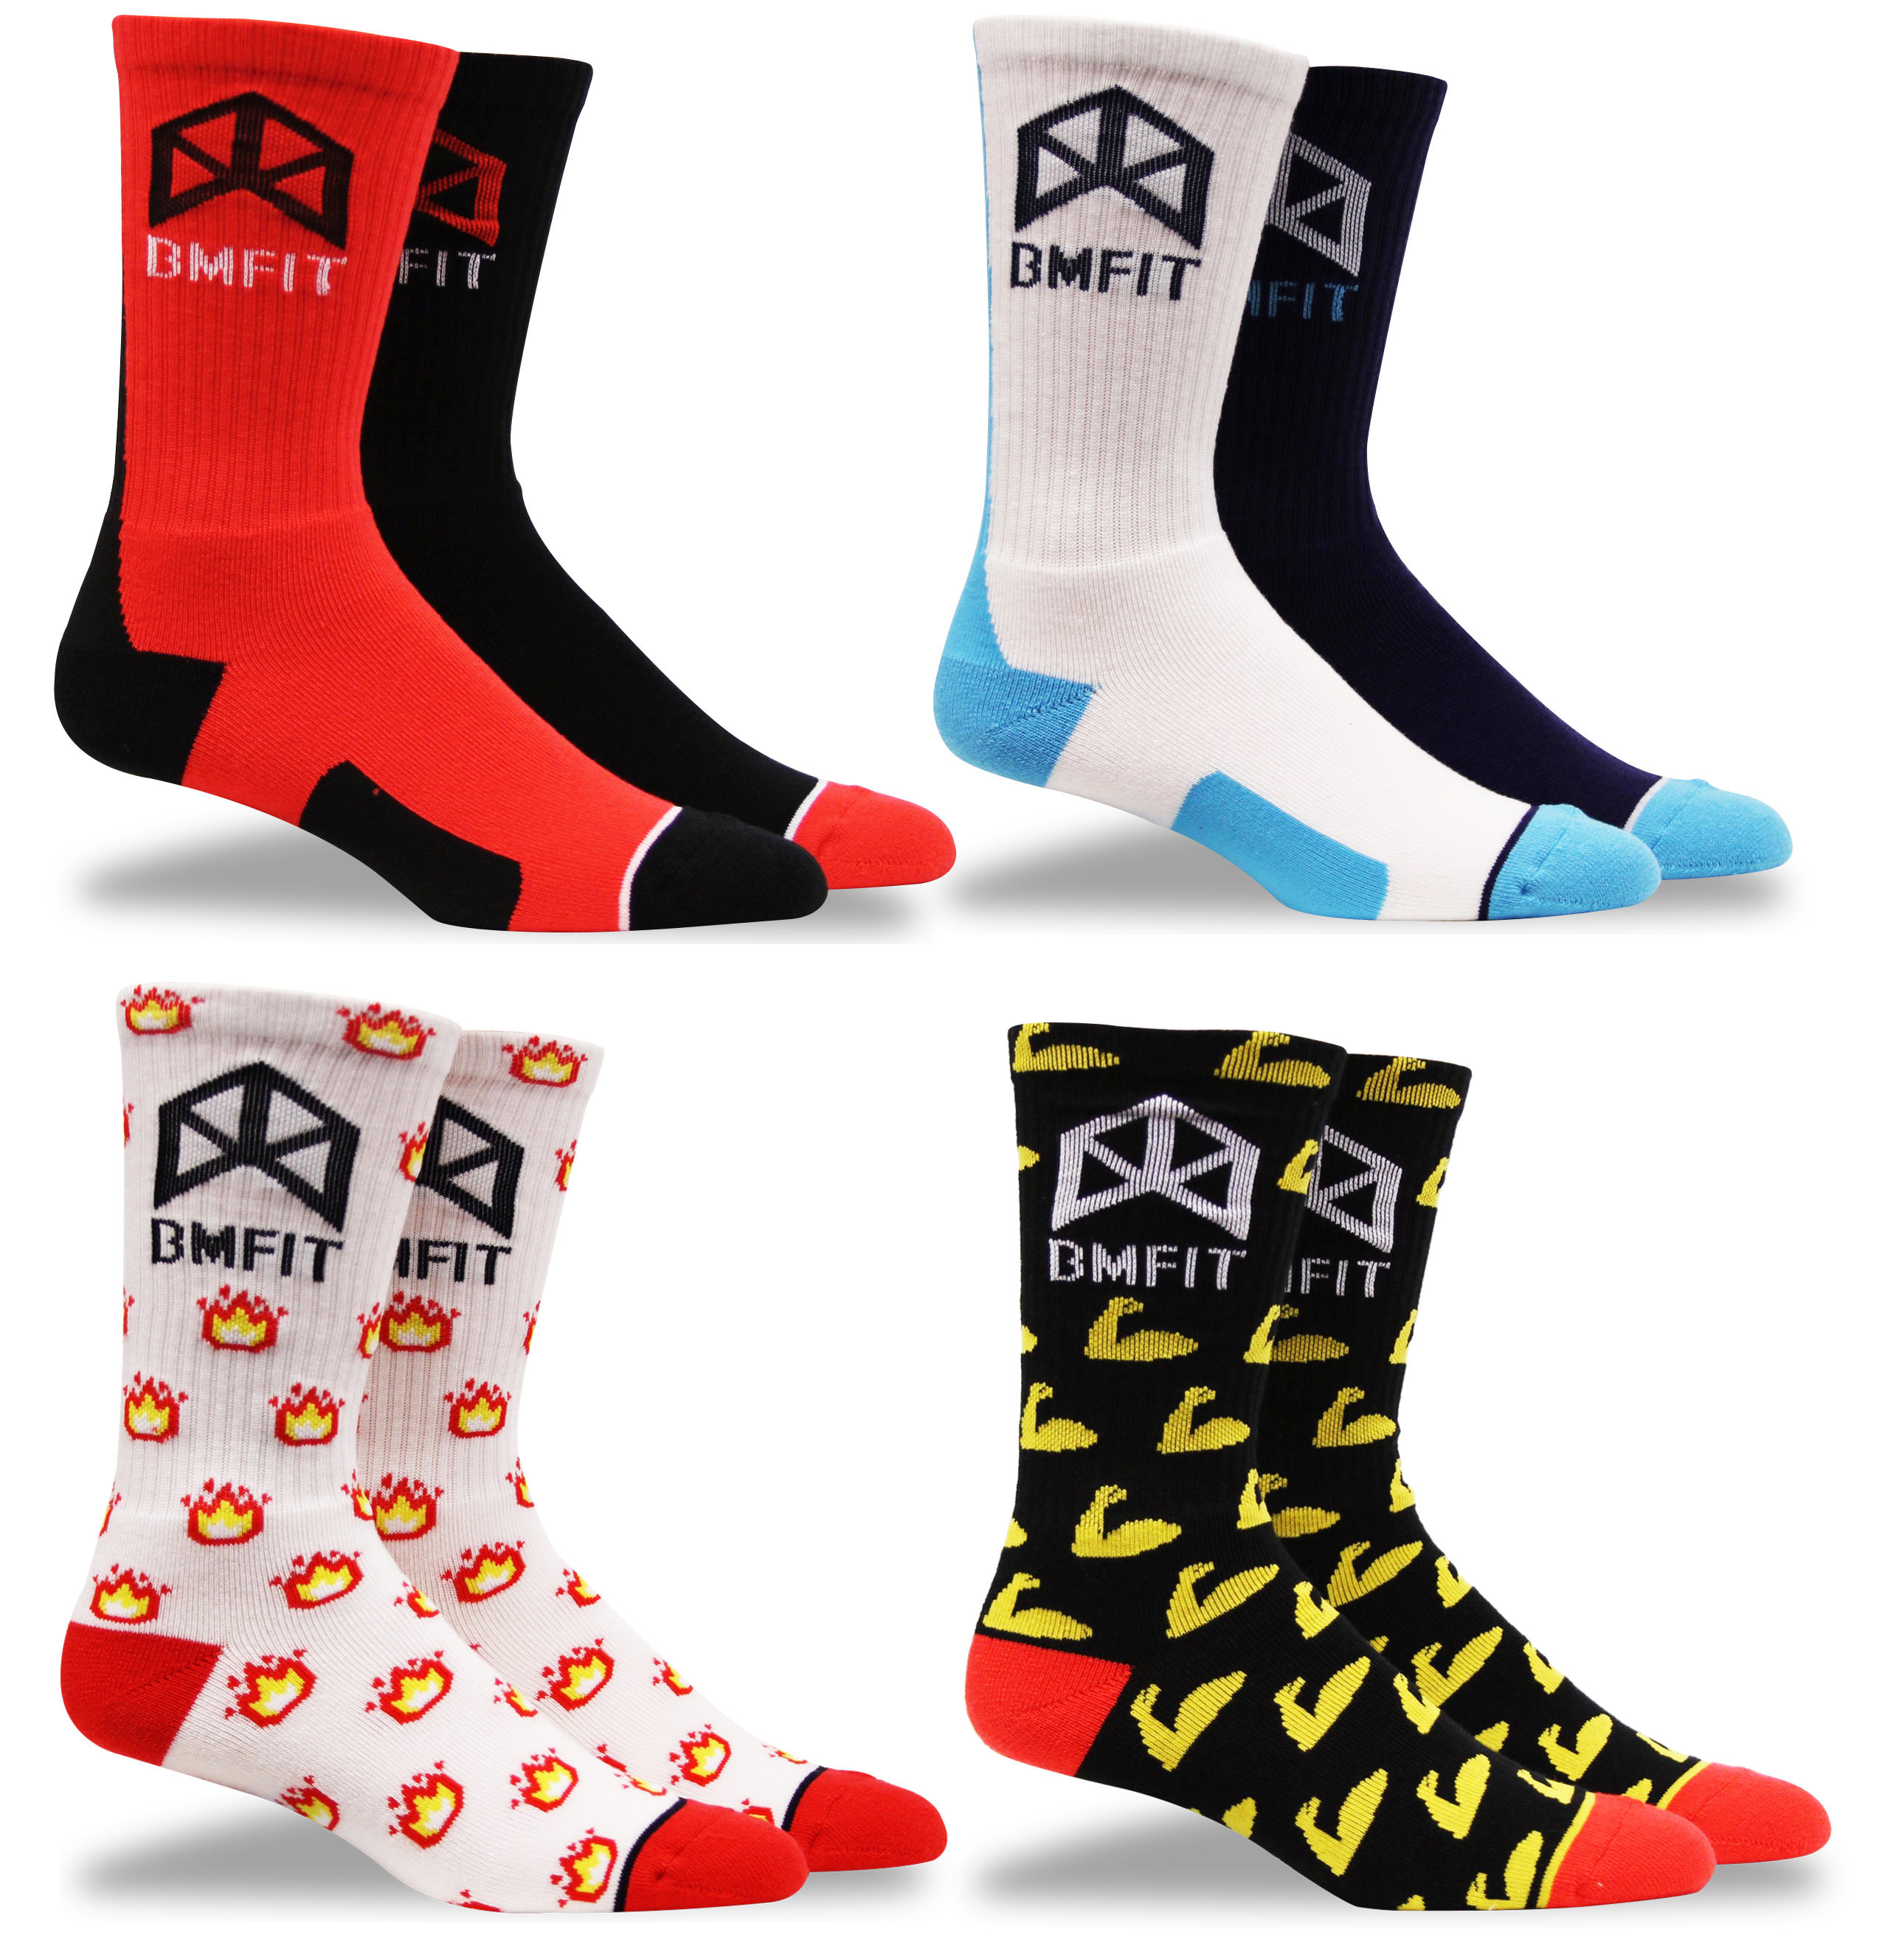 BMFIT Socks ALL FOUR PACKAGE